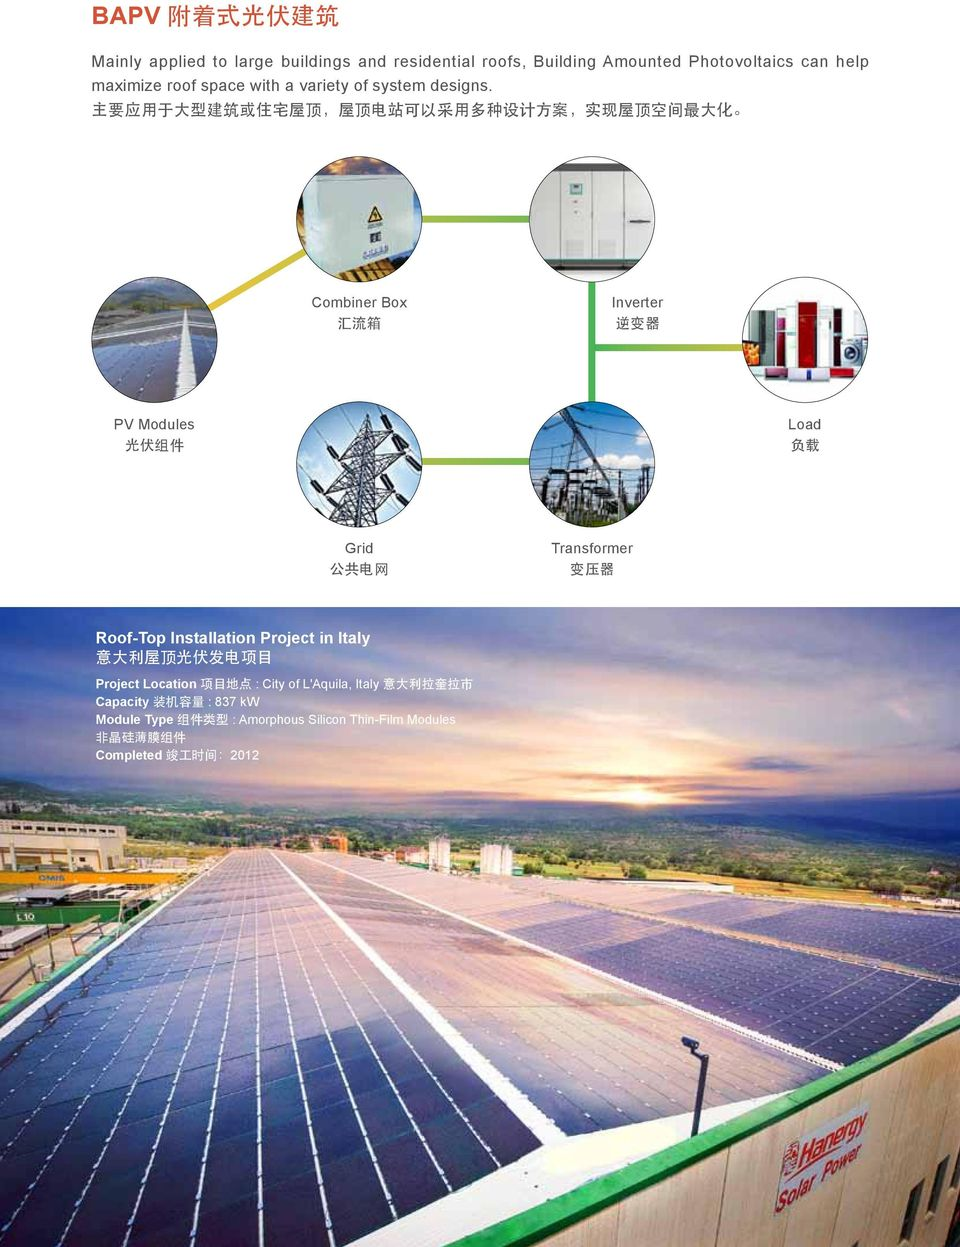 Combiner Box Inverter PV Modules Load Grid Transformer Roof-Top Installation Project in